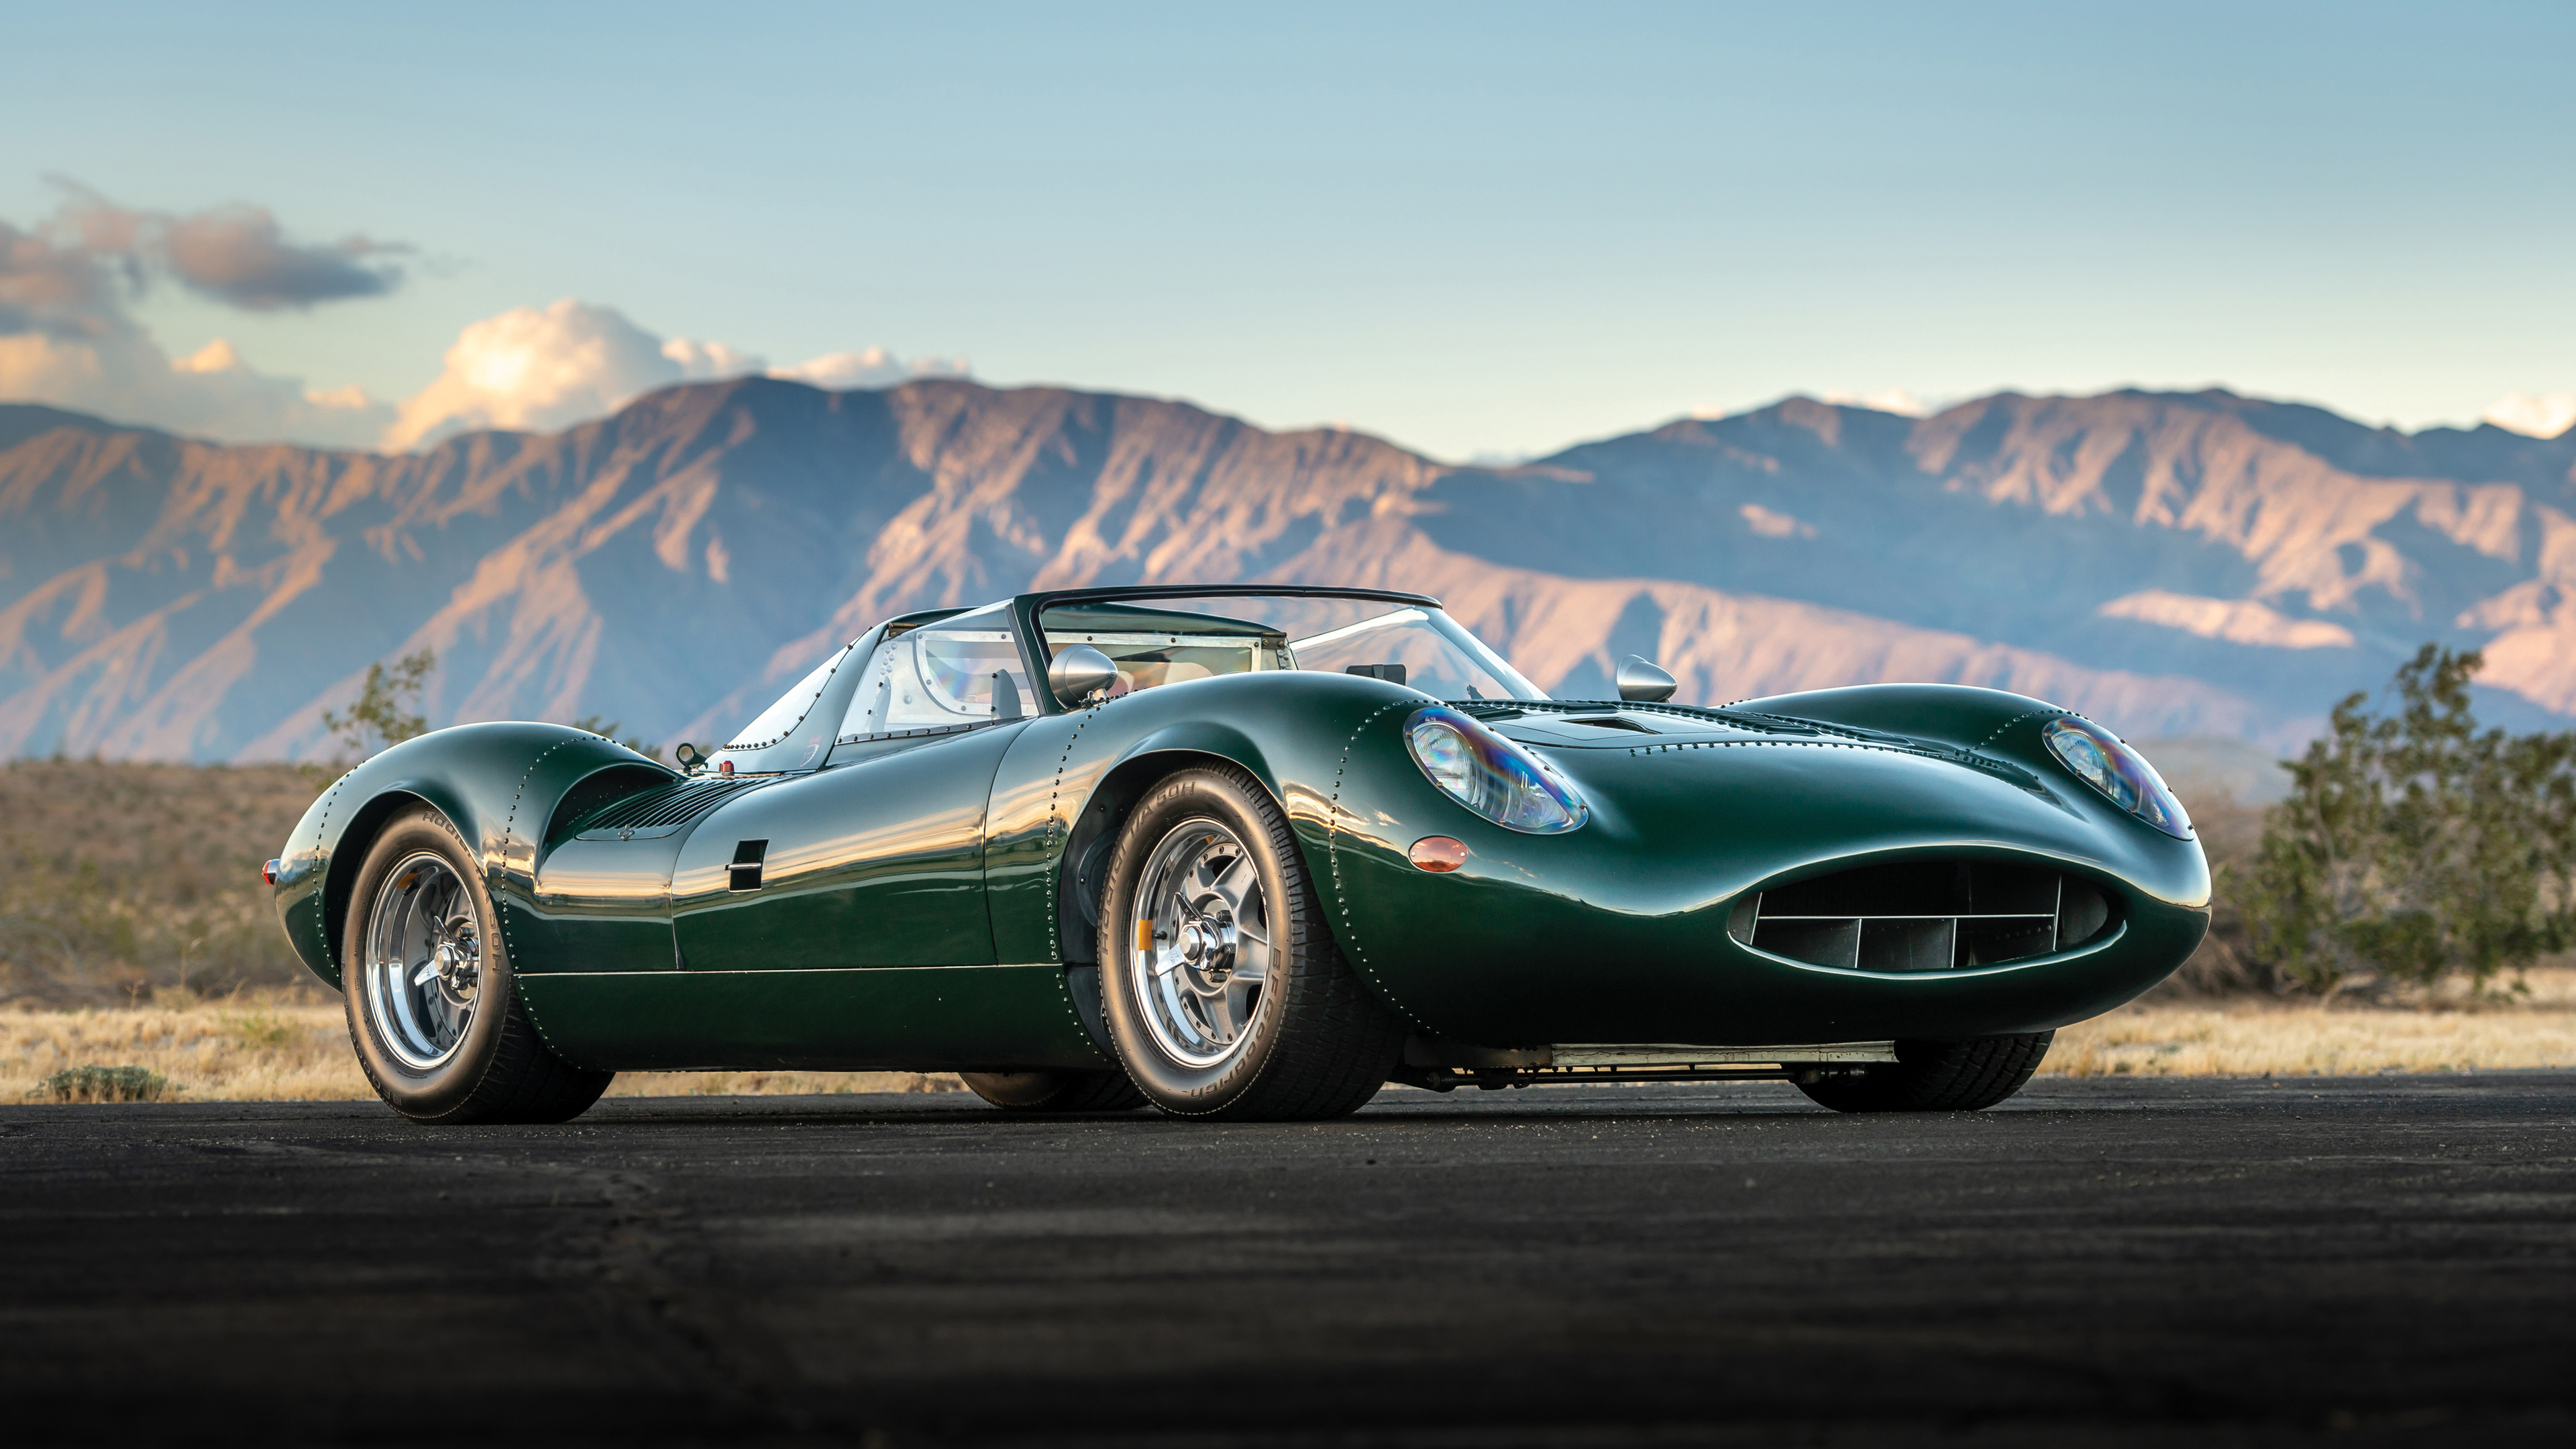 Wallpaper 4k Jaguar Xj13 Prototype 4k Wallpapers Cars Wallpapers Hd Wallpapers Jaguar Wallpapers Jaguar Xj Wallpapers Vintage Cars Wallpapers